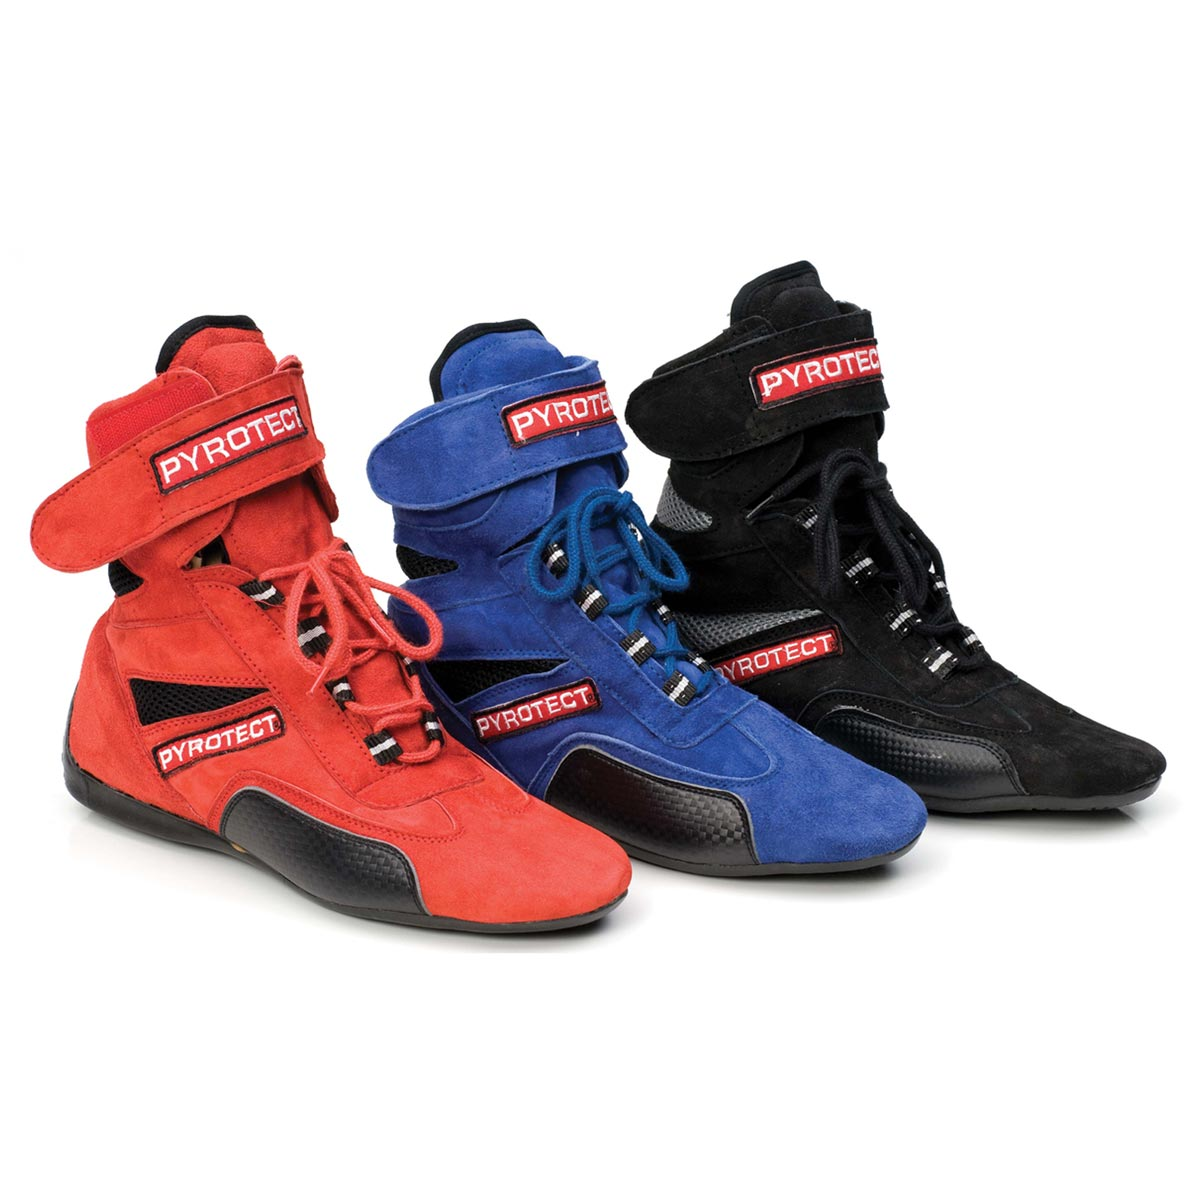 Sport Series SFI Racing Shoes - Pyrotect